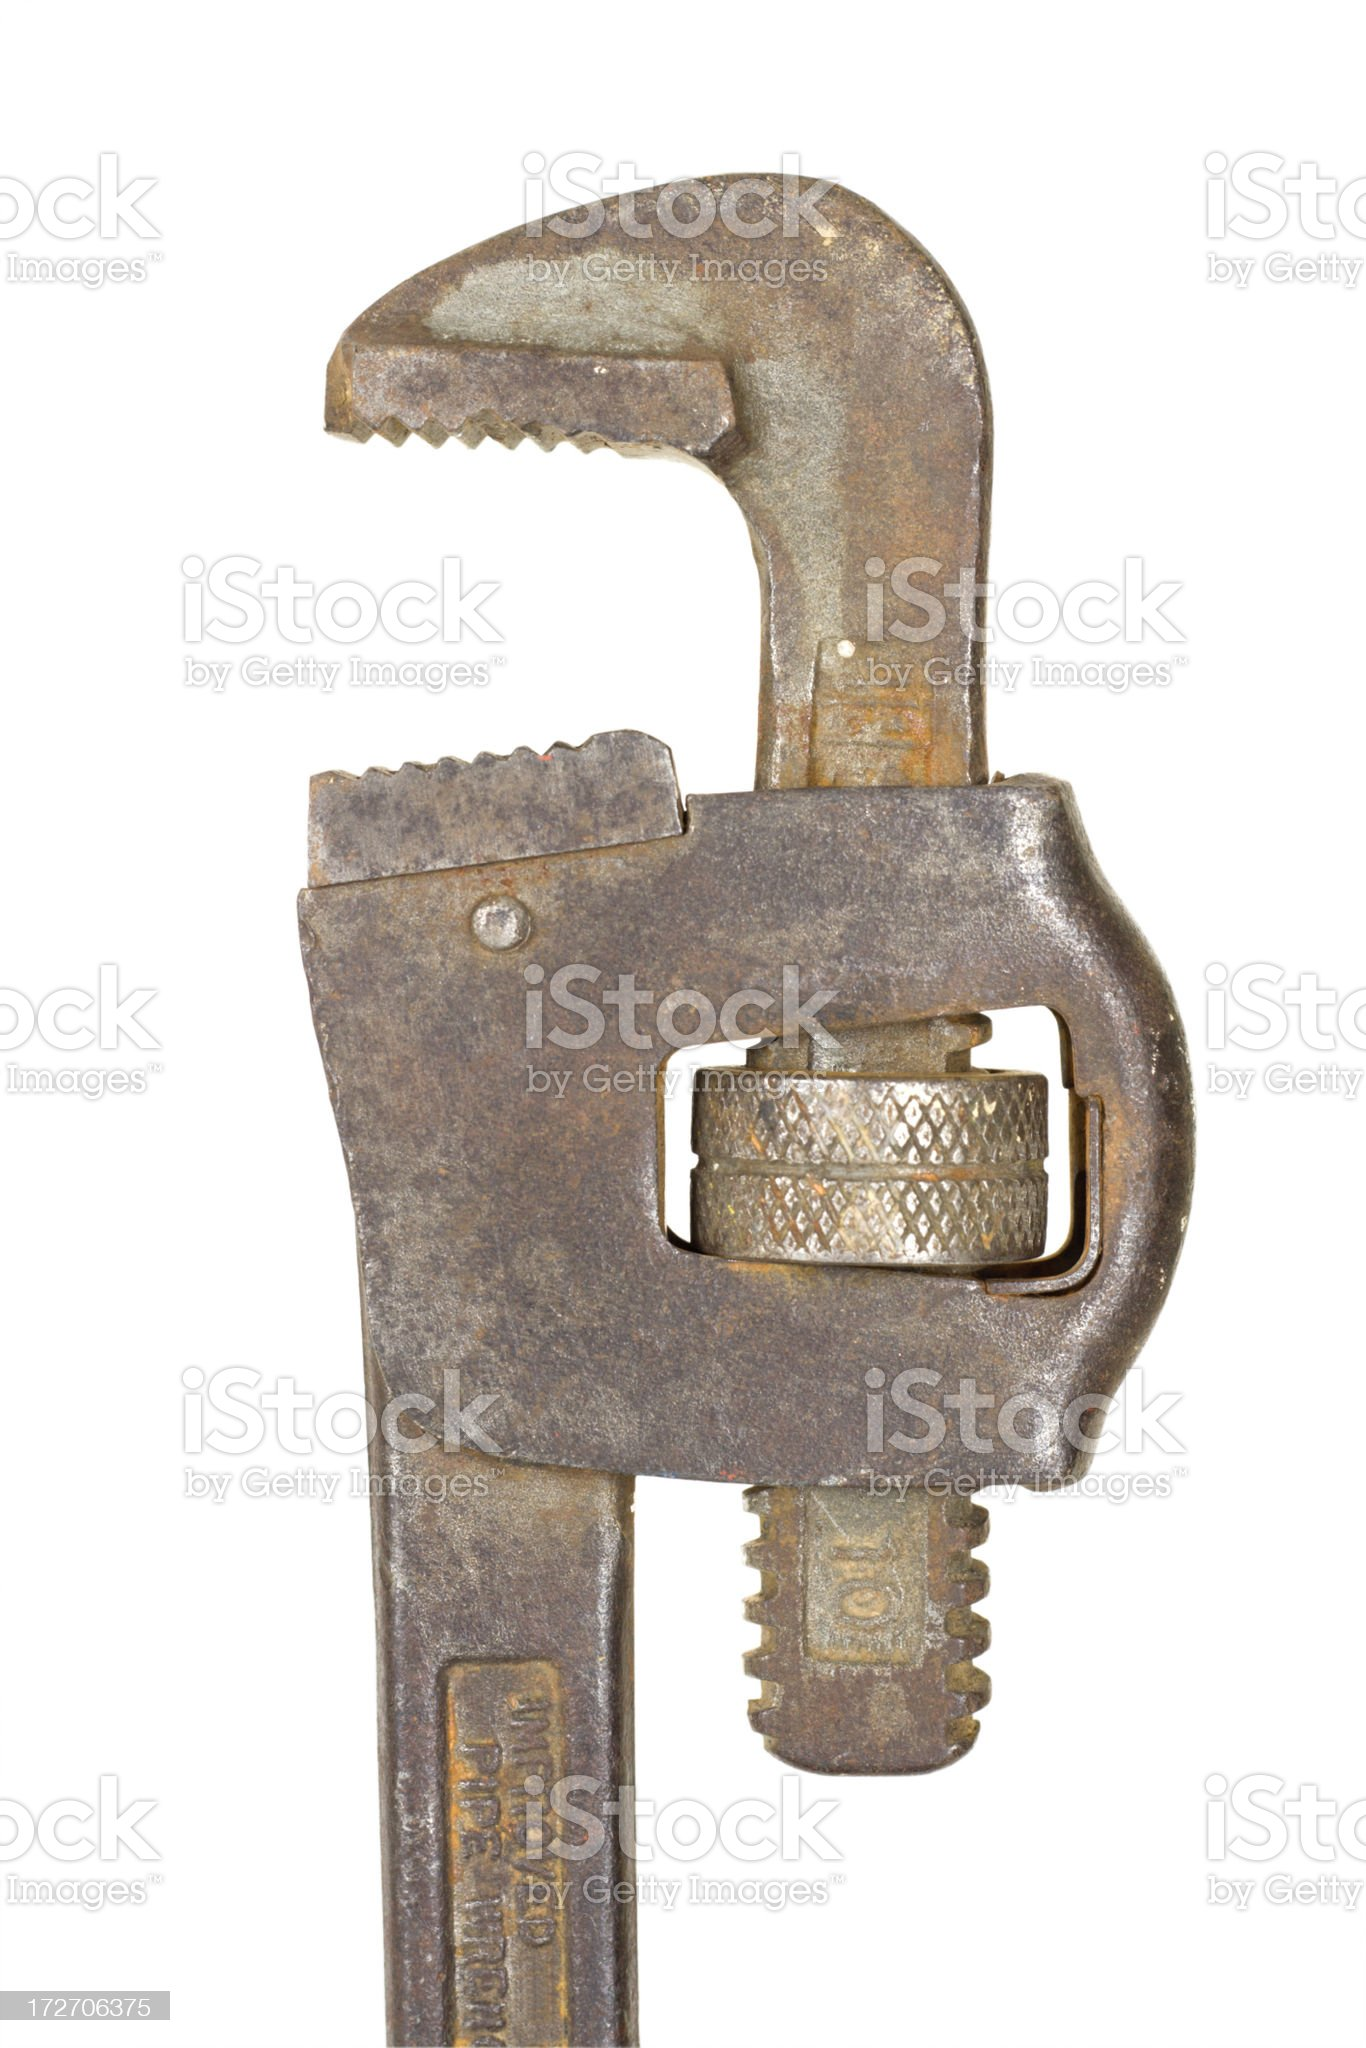 Pipe Wrench With Clipping Path Close Up royalty-free stock photo